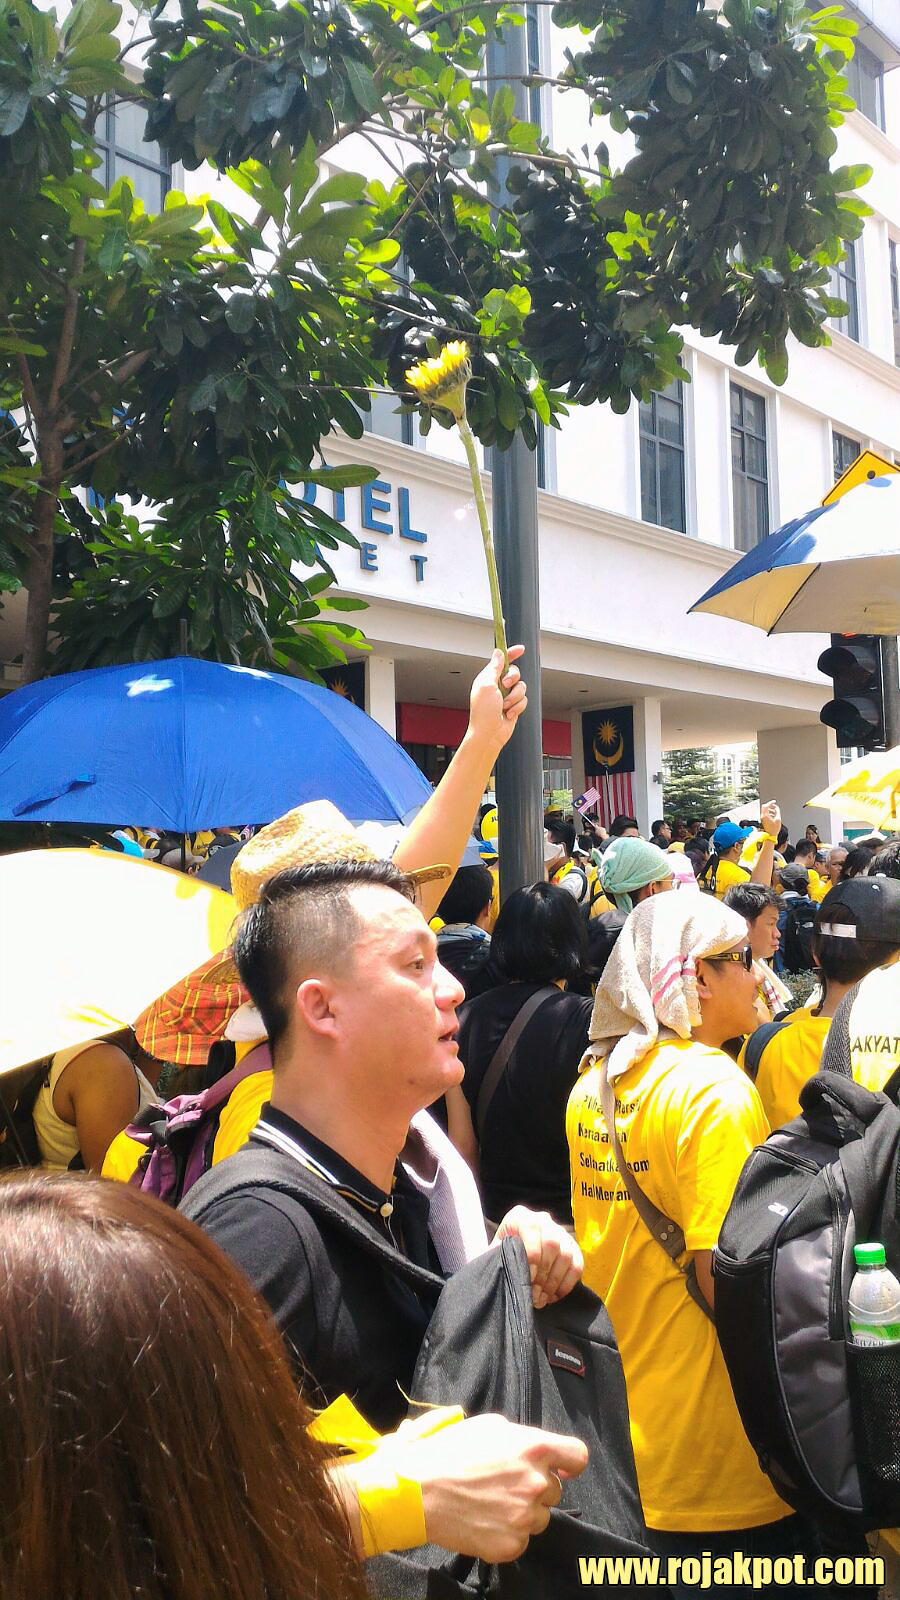 Bersih 4 Day 1 - Just outside Pasar Seni LRT station